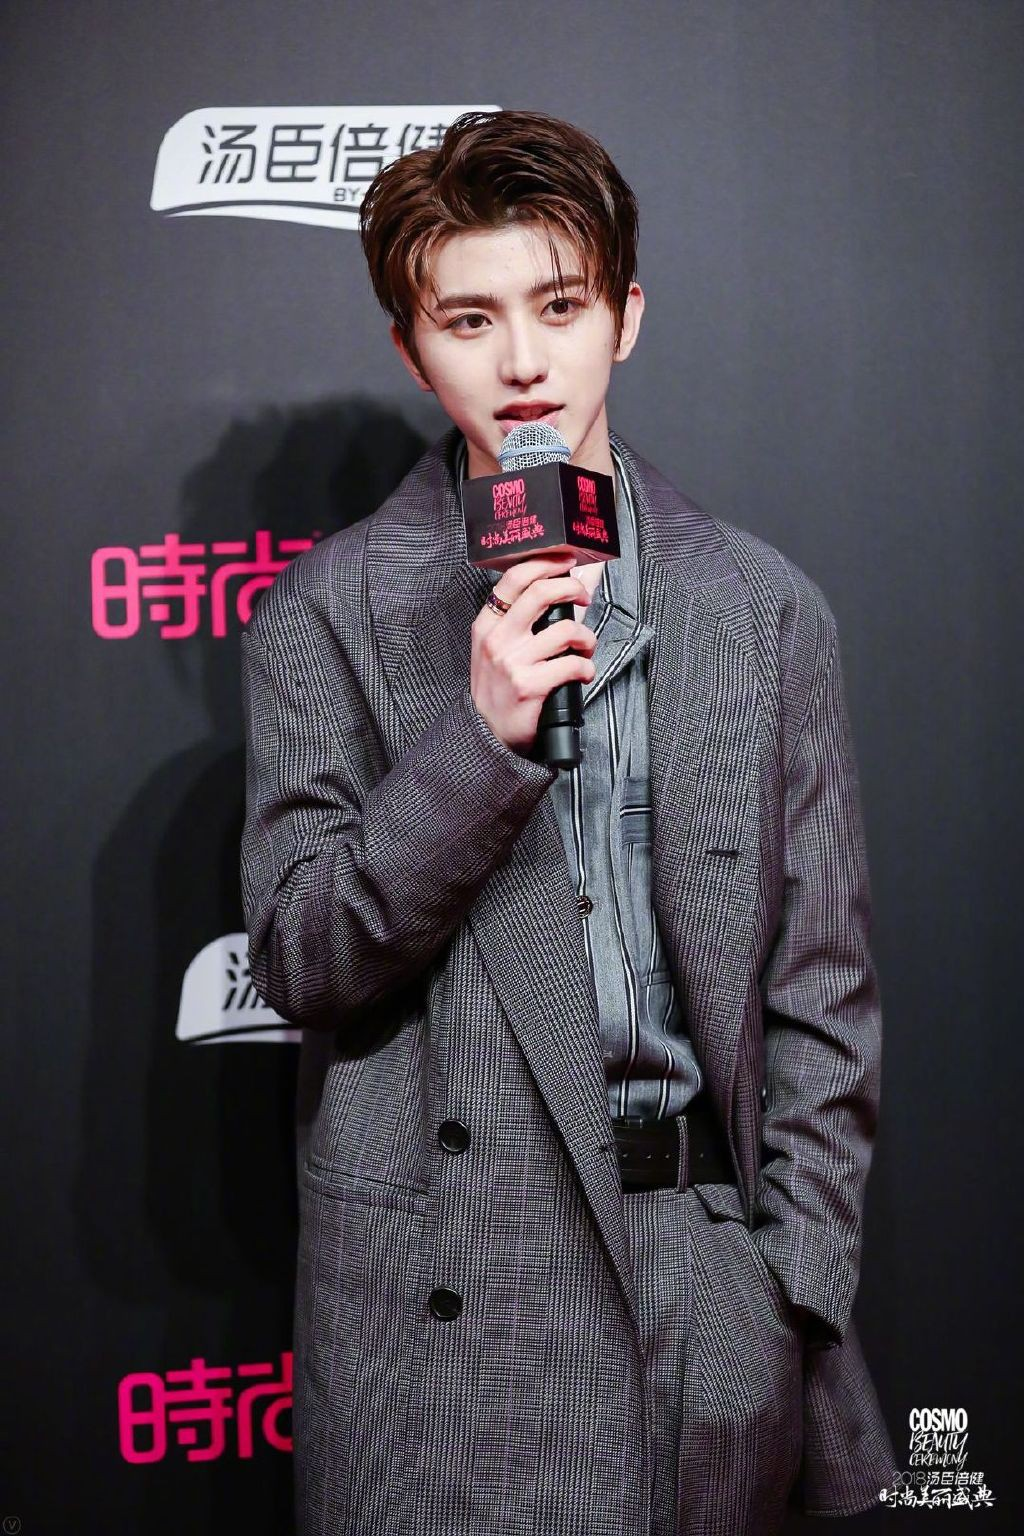 The warmest red carpet Cbiz: Jaejoong causes fever due to the sudden appearance, Secretary Kim Hot Pinky - Figure 31.